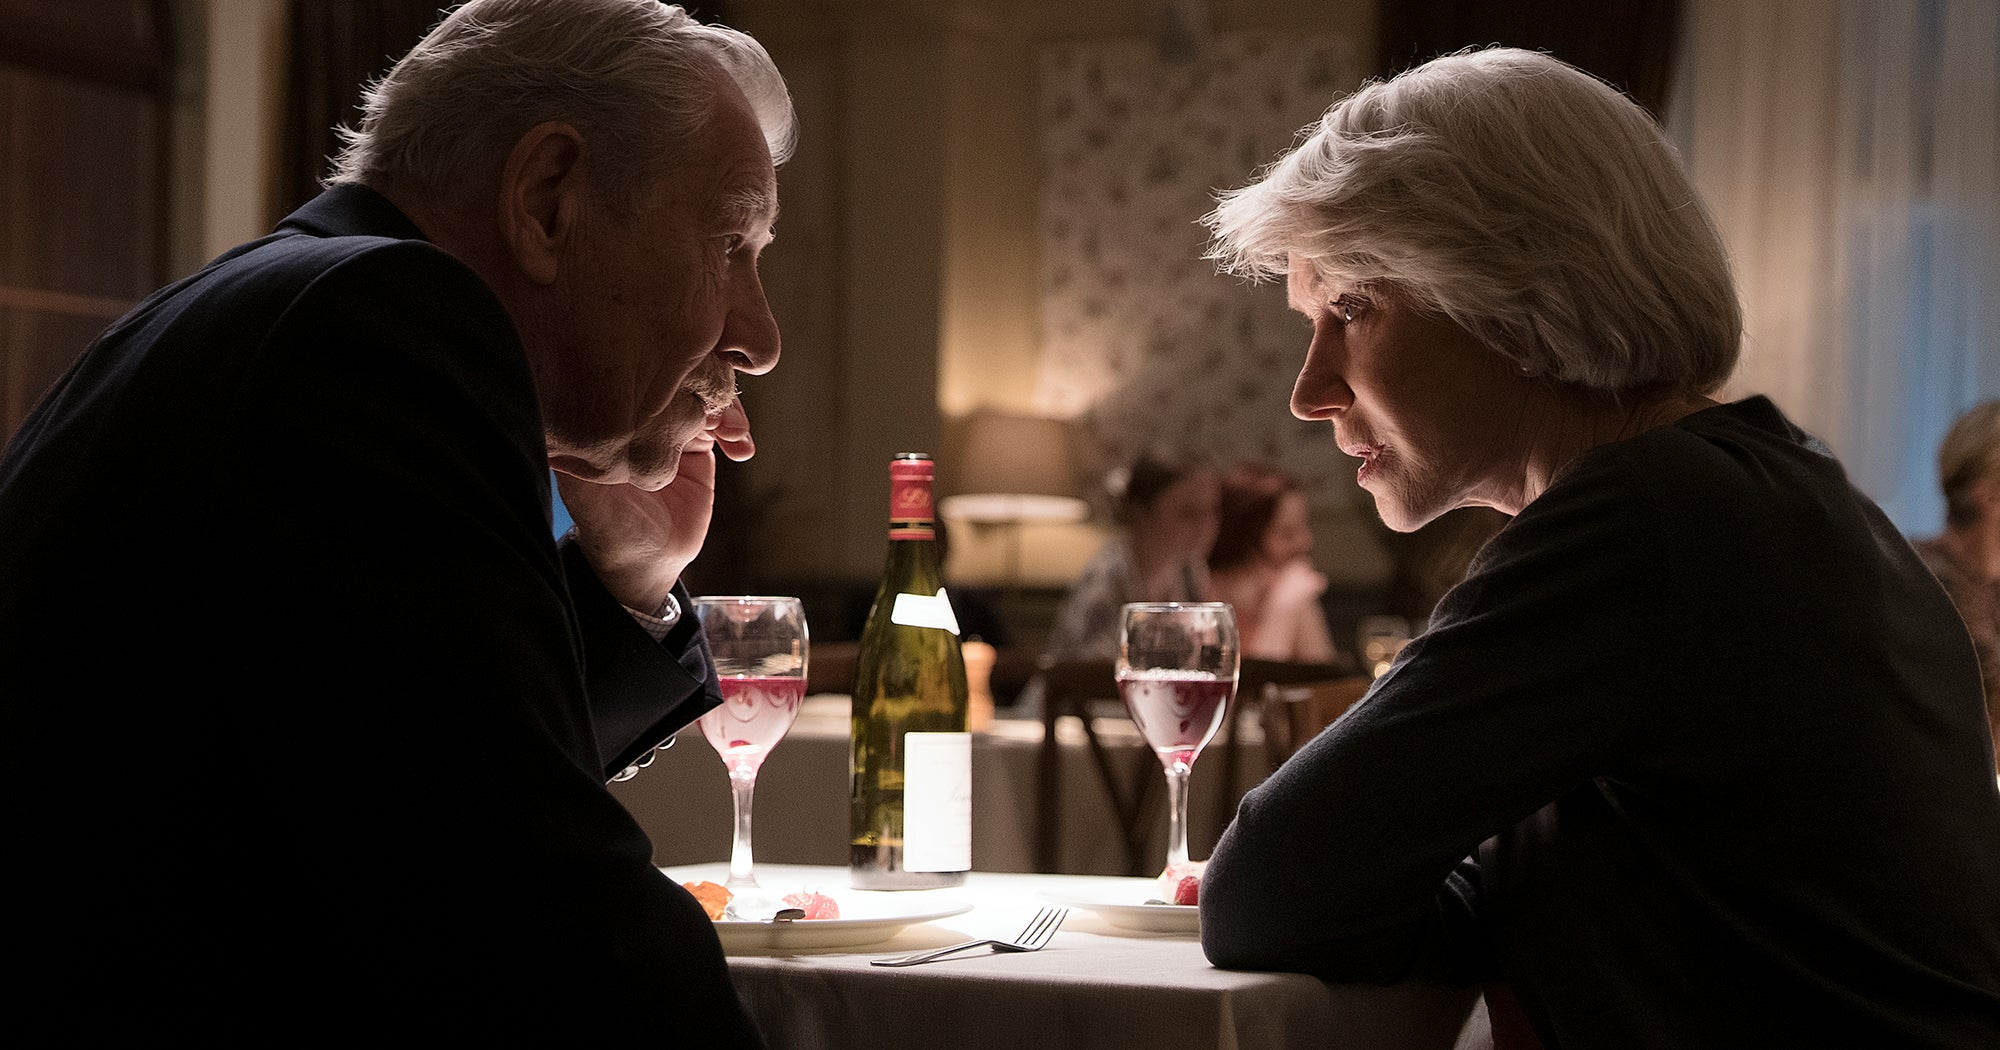 Helen Mirren Gets Scammed In The Trailer For The Good Liar — Or Does She?